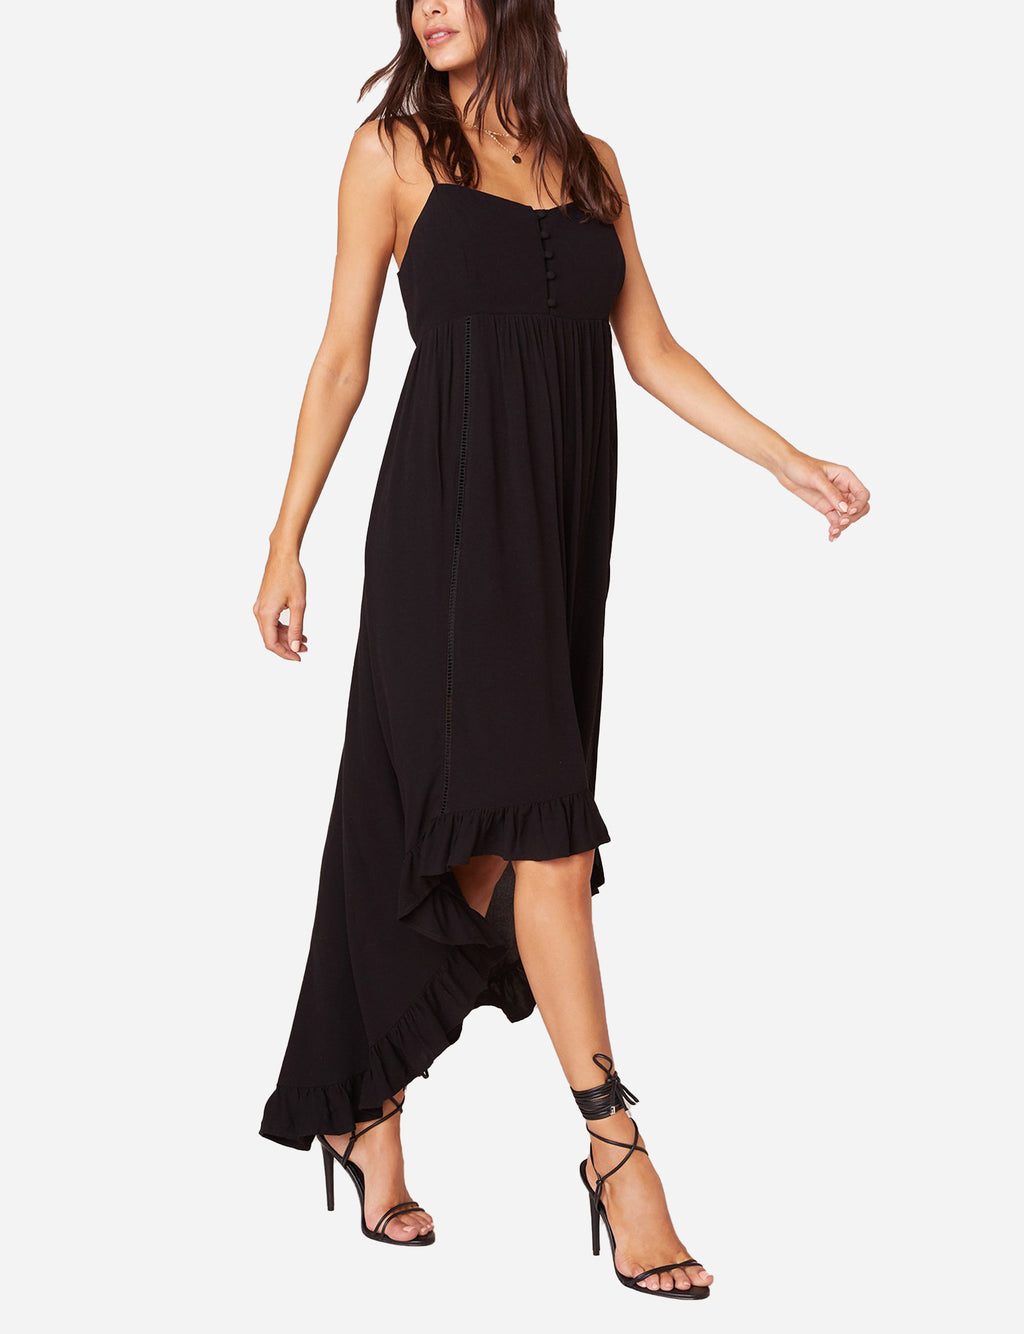 Highs and Lows Dress in Black